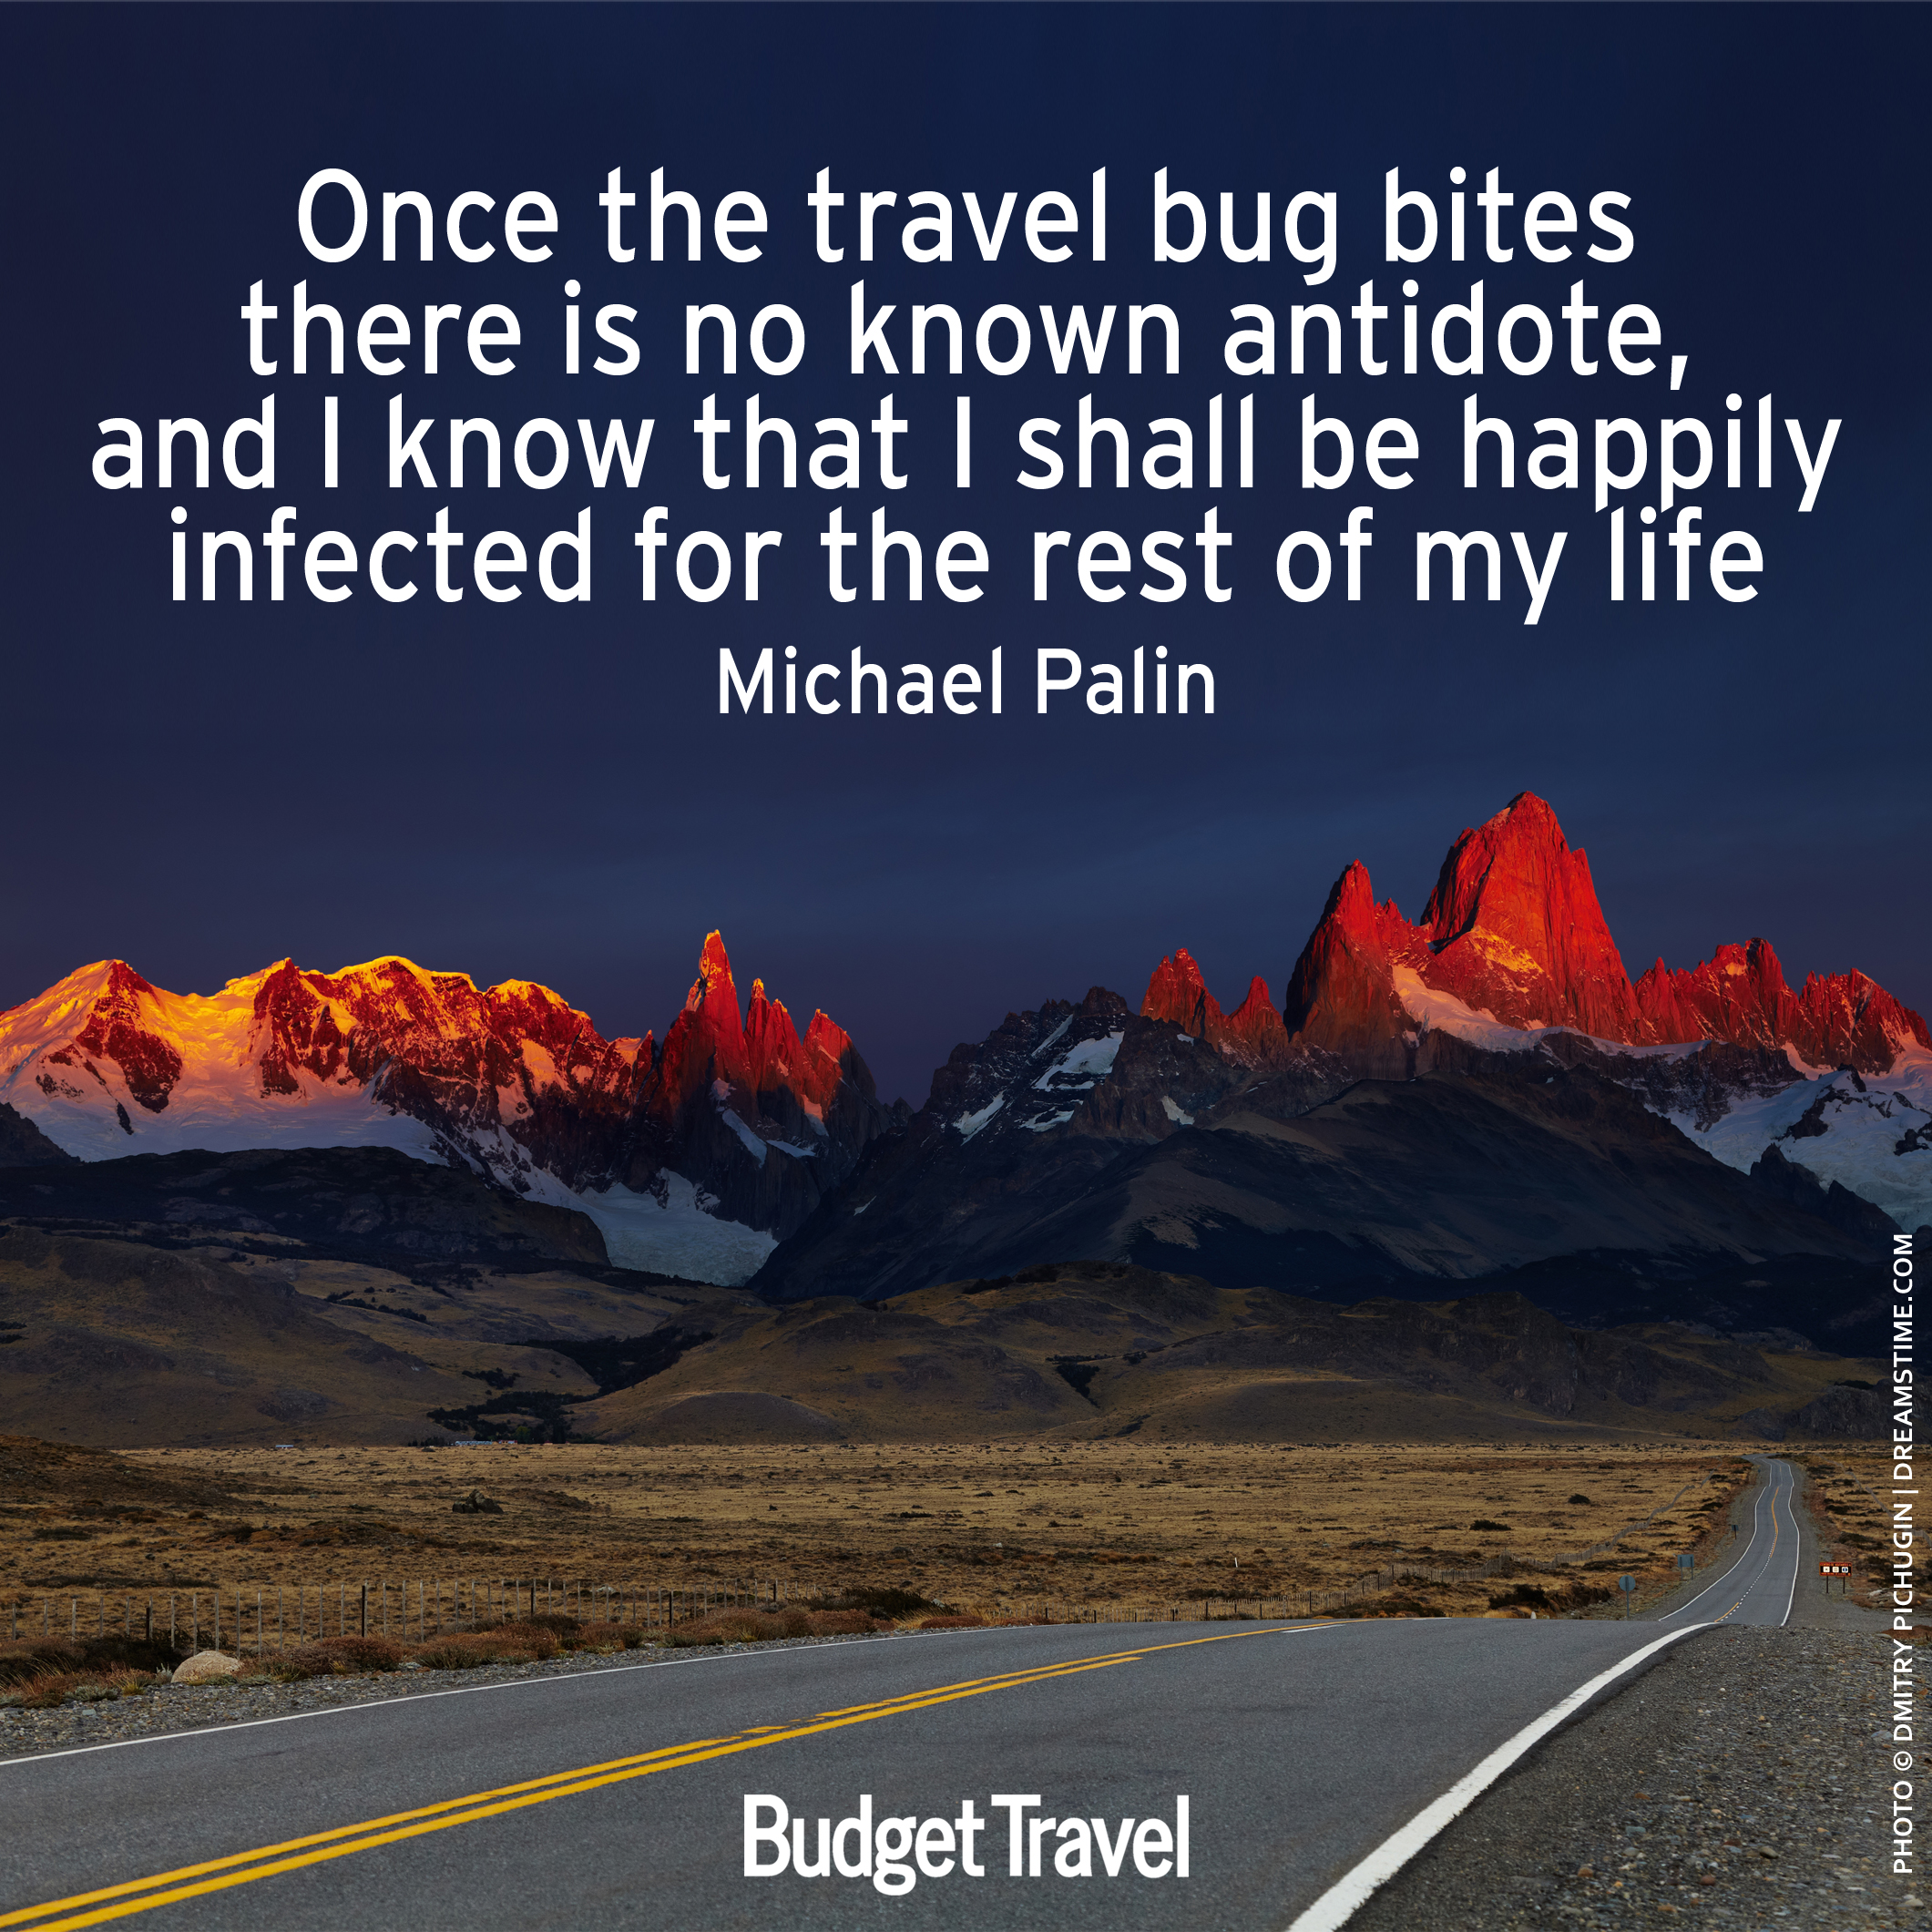 michael-palin-quote-3162015-164415_original